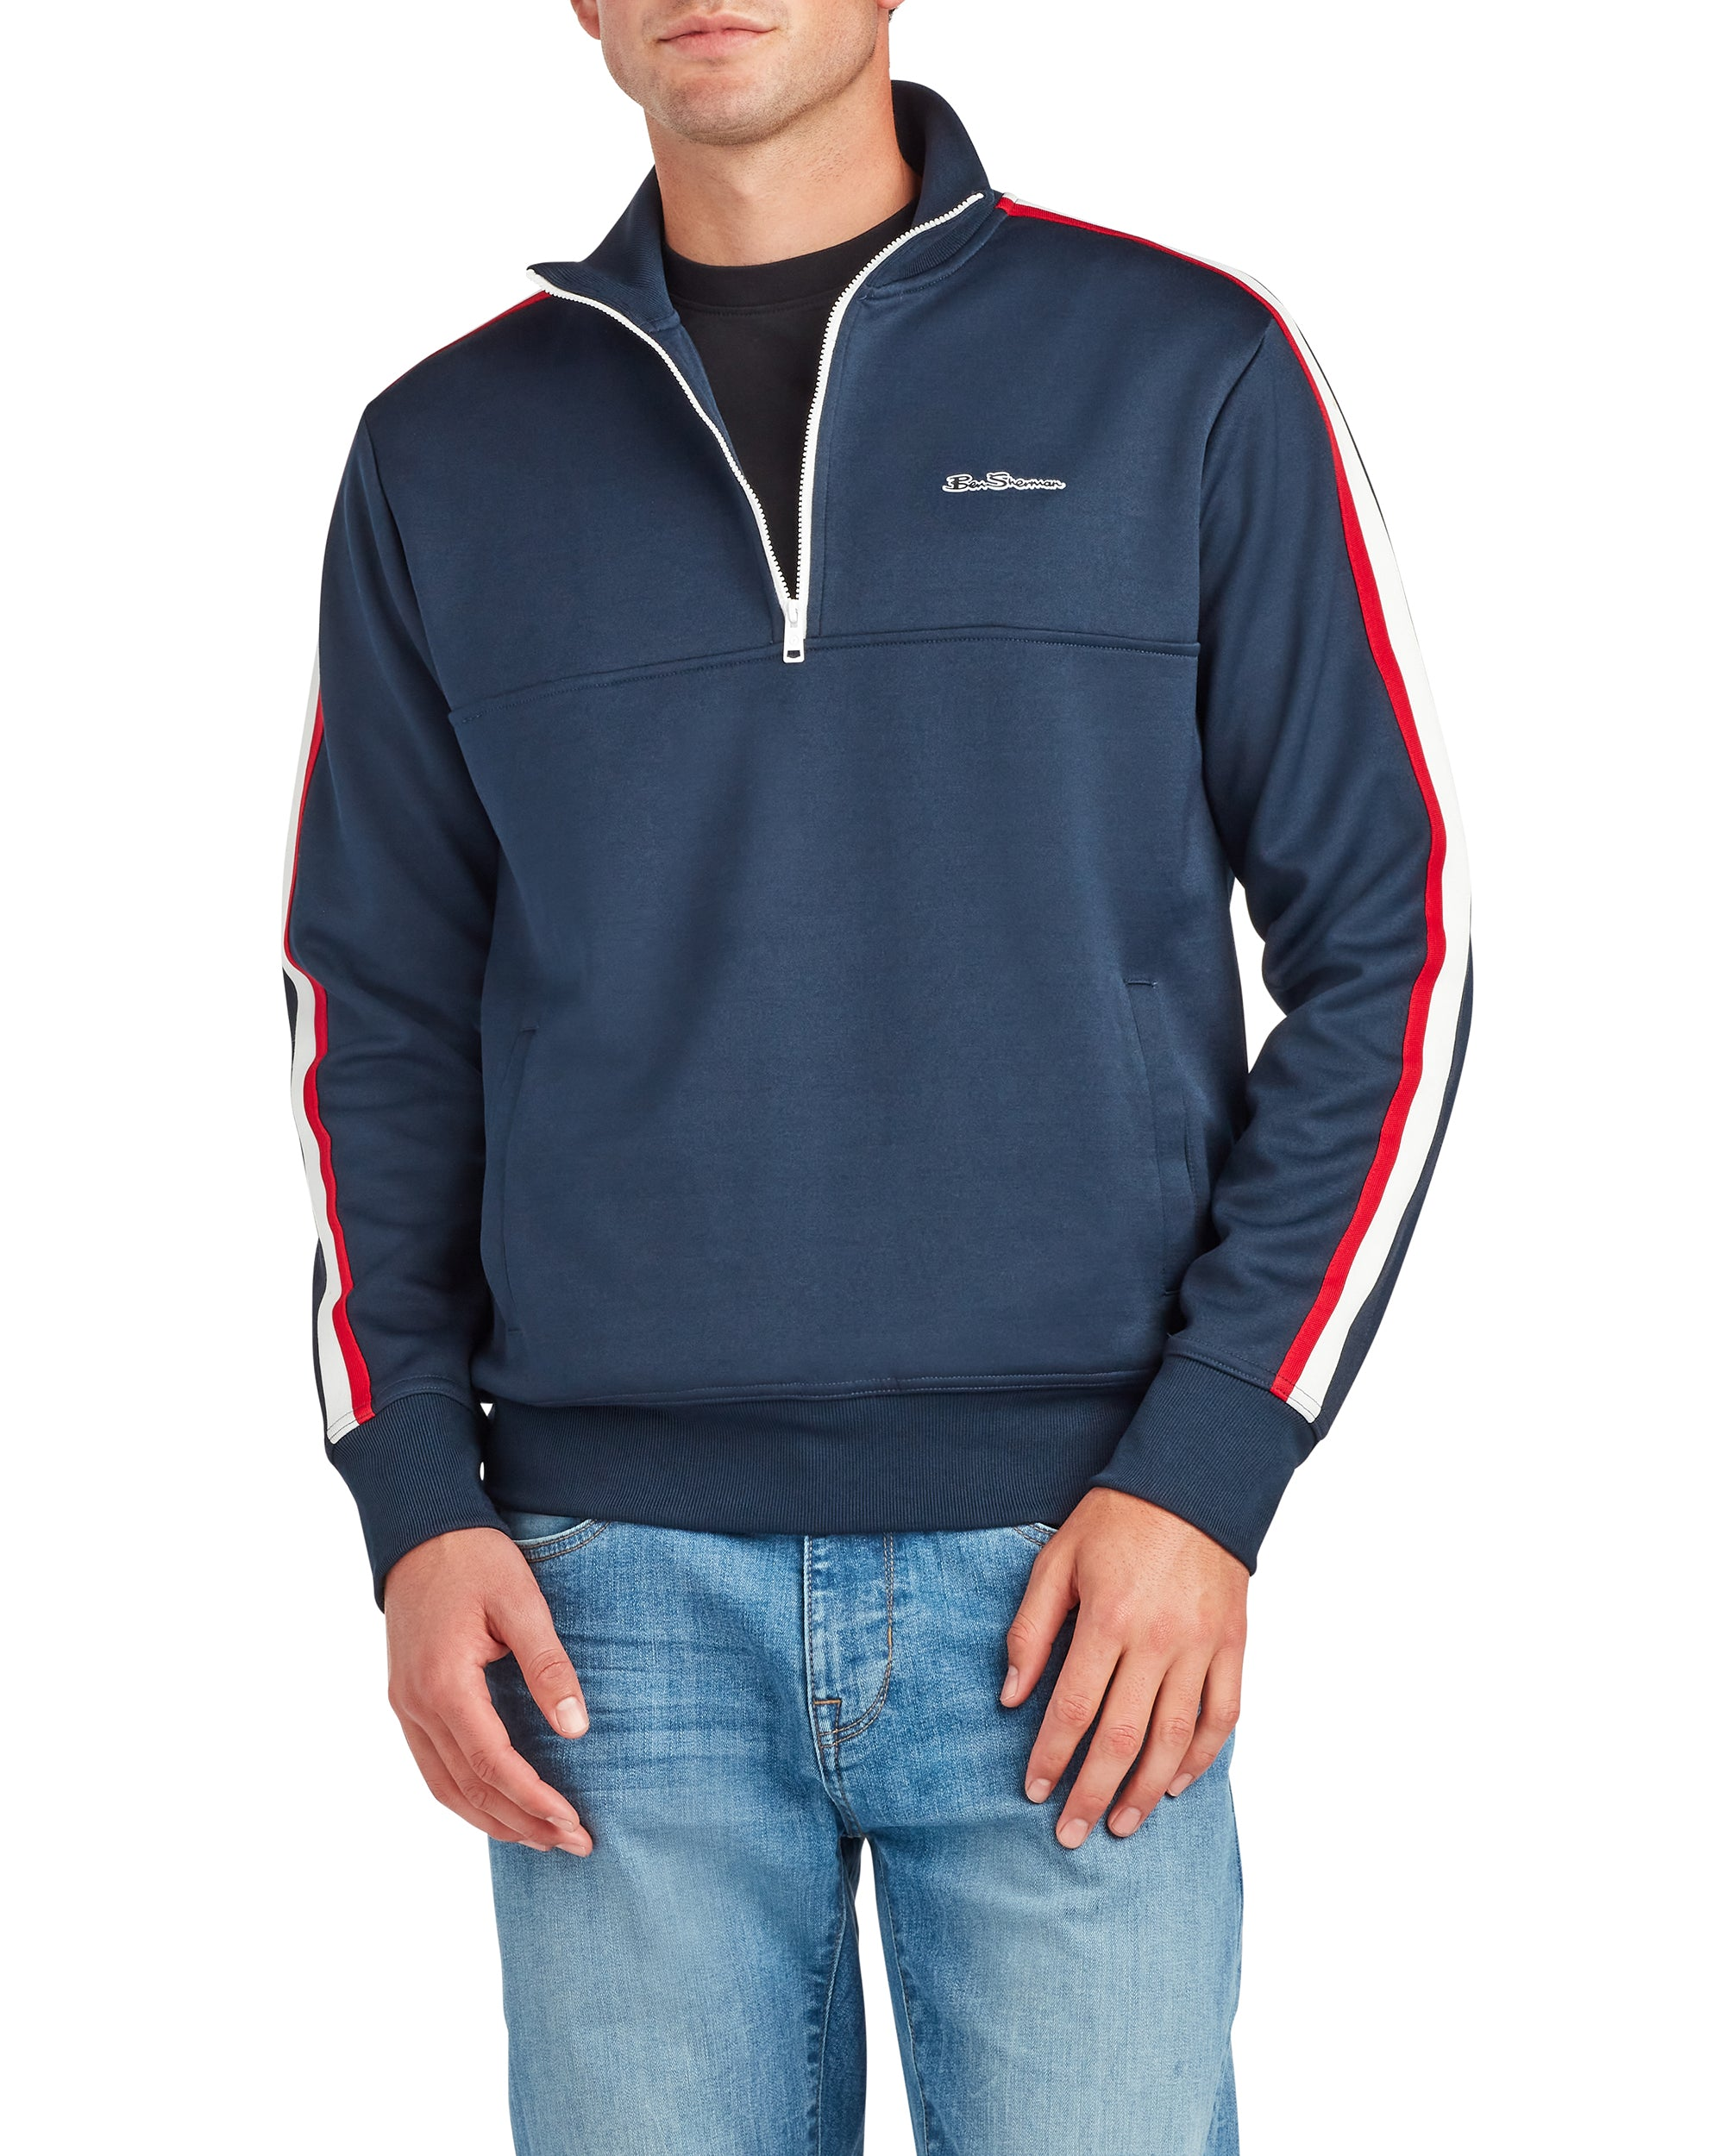 Mod Tape Tricot Quarter-Zip Pullover  - Navy